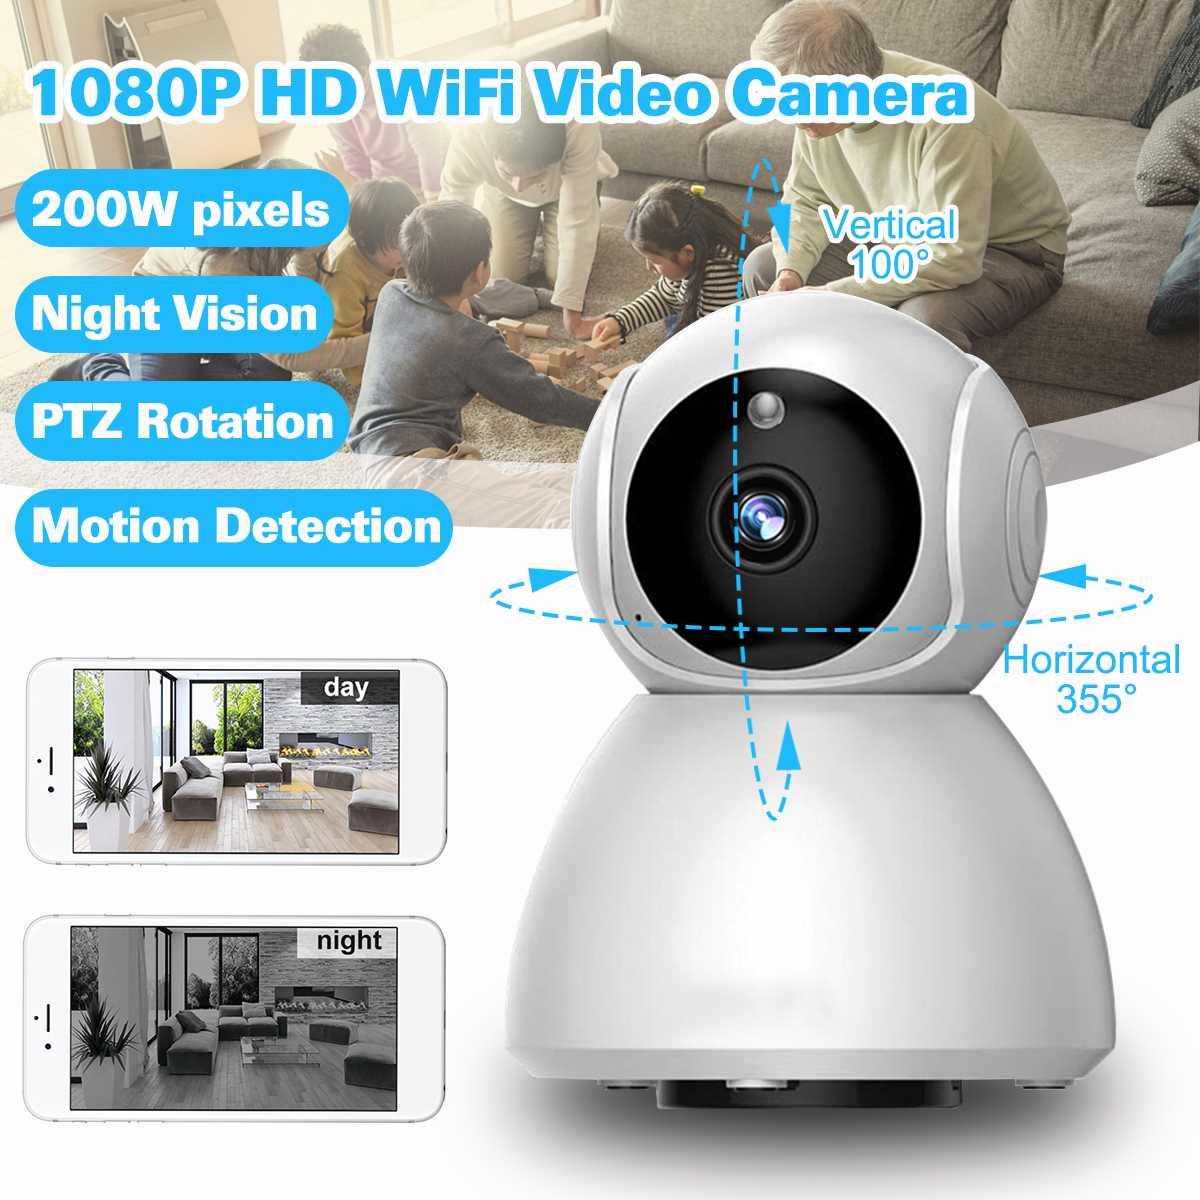 HD 1080P Cloud Wireless IP Camera Intelligent Auto Tracking Of Human Home Security camera Surveillance CCTV Network Wifi CameraHD 1080P Cloud Wireless IP Camera Intelligent Auto Tracking Of Human Home Security camera Surveillance CCTV Network Wifi Camera